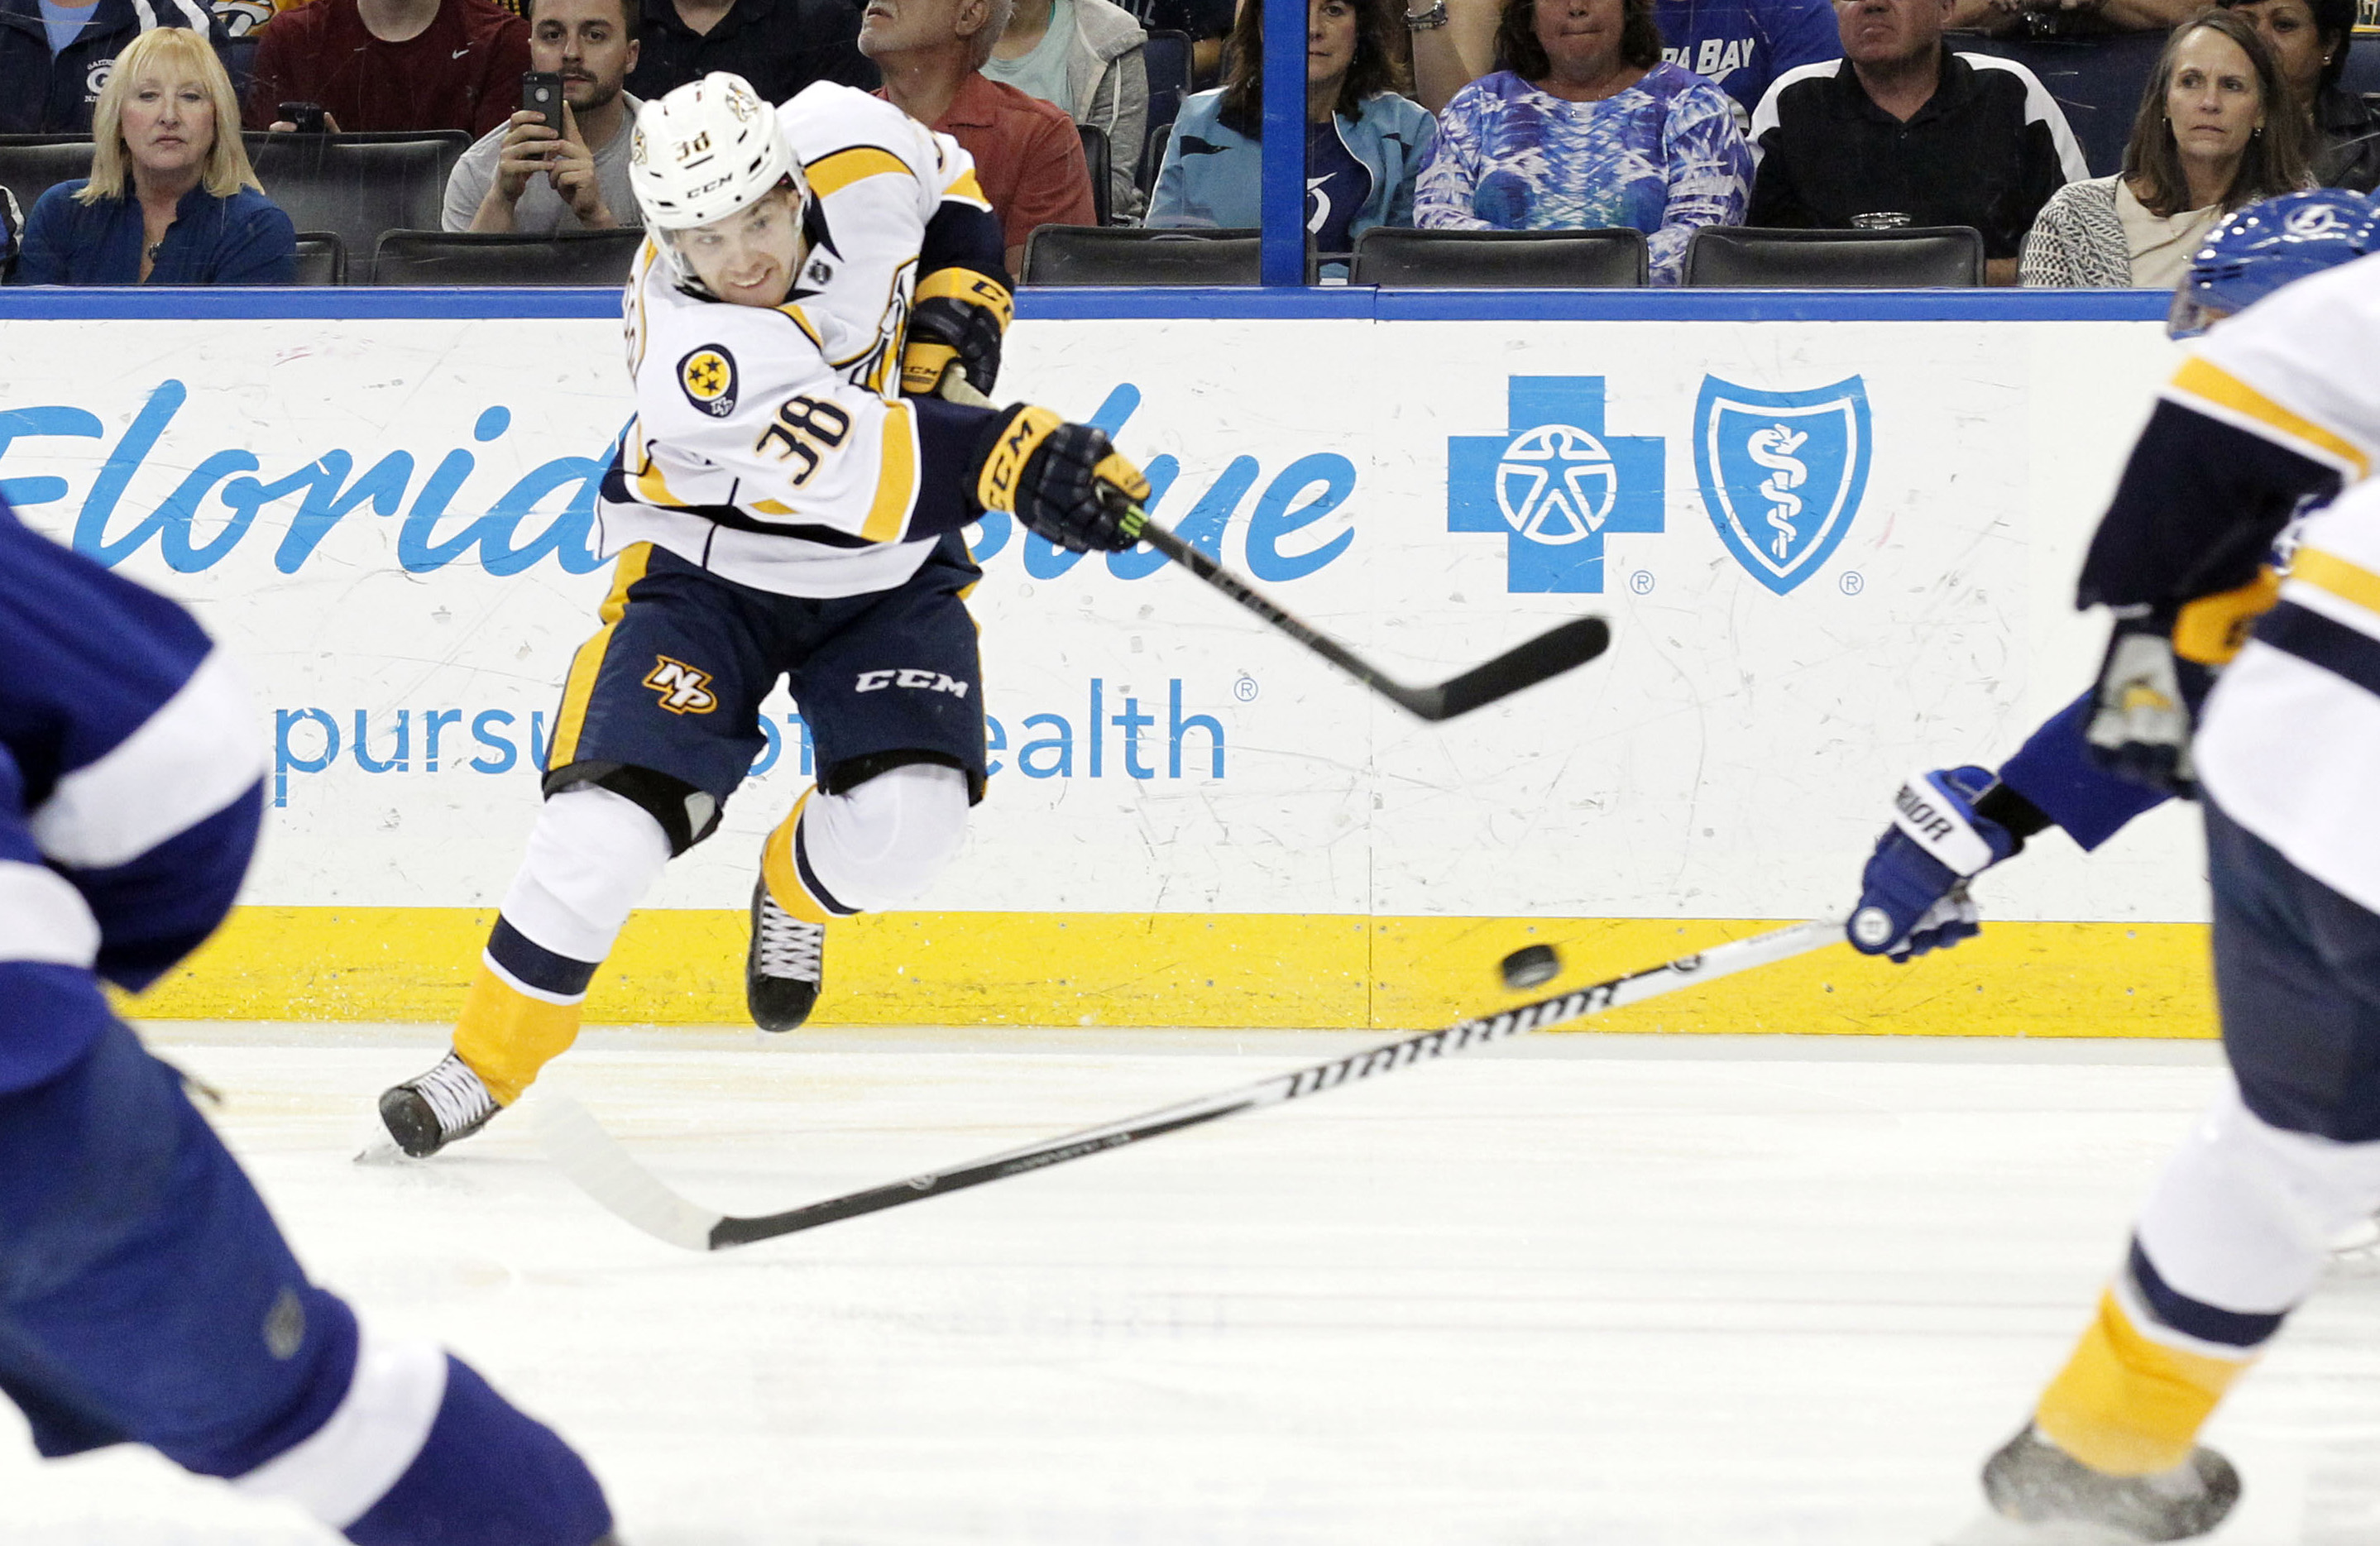 Viktor Arvidsson made quite an impact last season for the Admirals and will look to make the big club this fall.